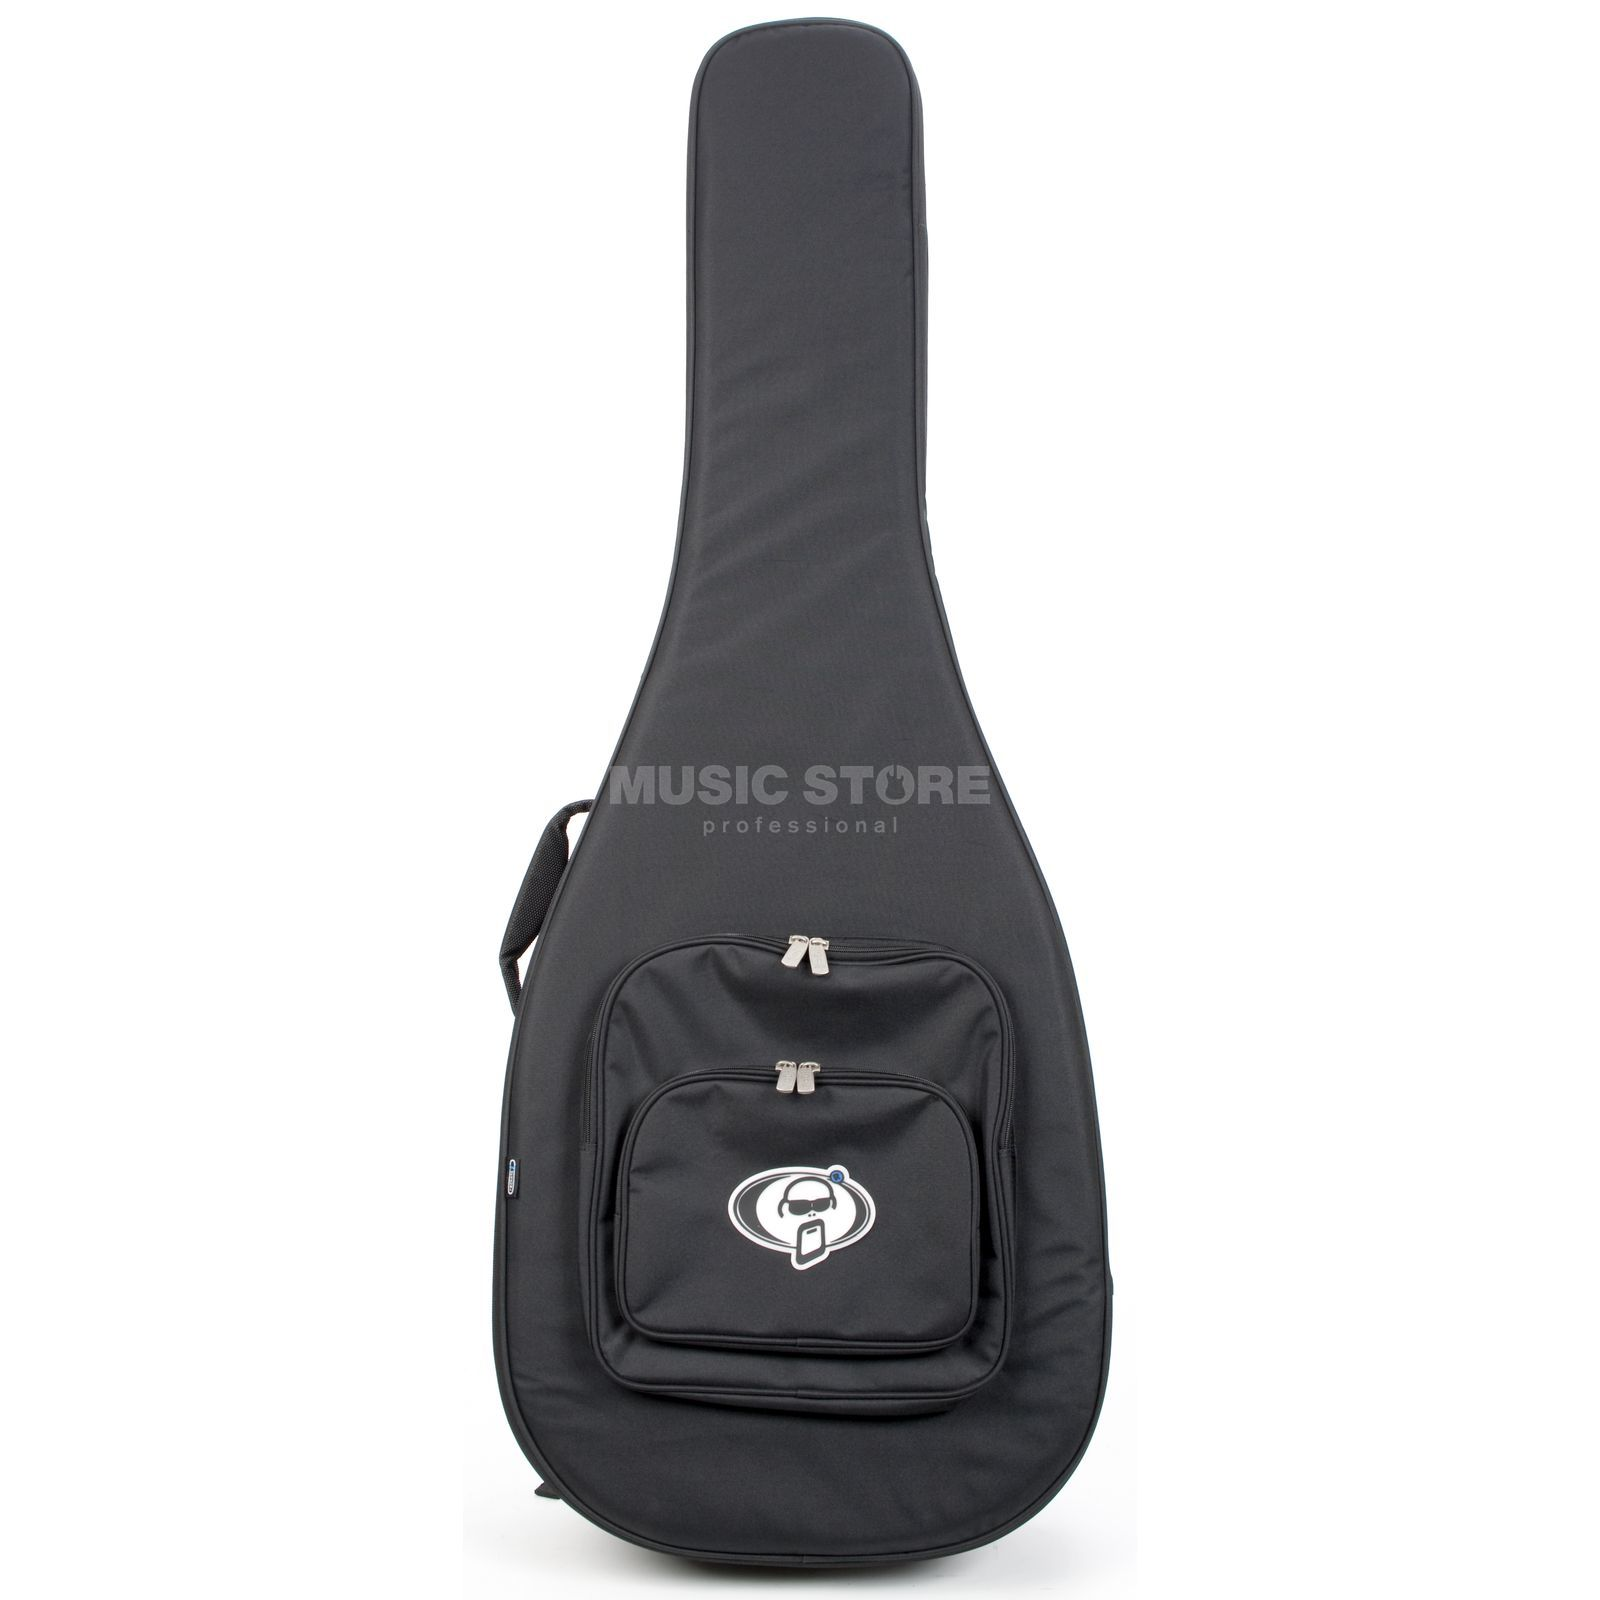 Protection Racket Case AcousticBass Standard 7054  Product Image